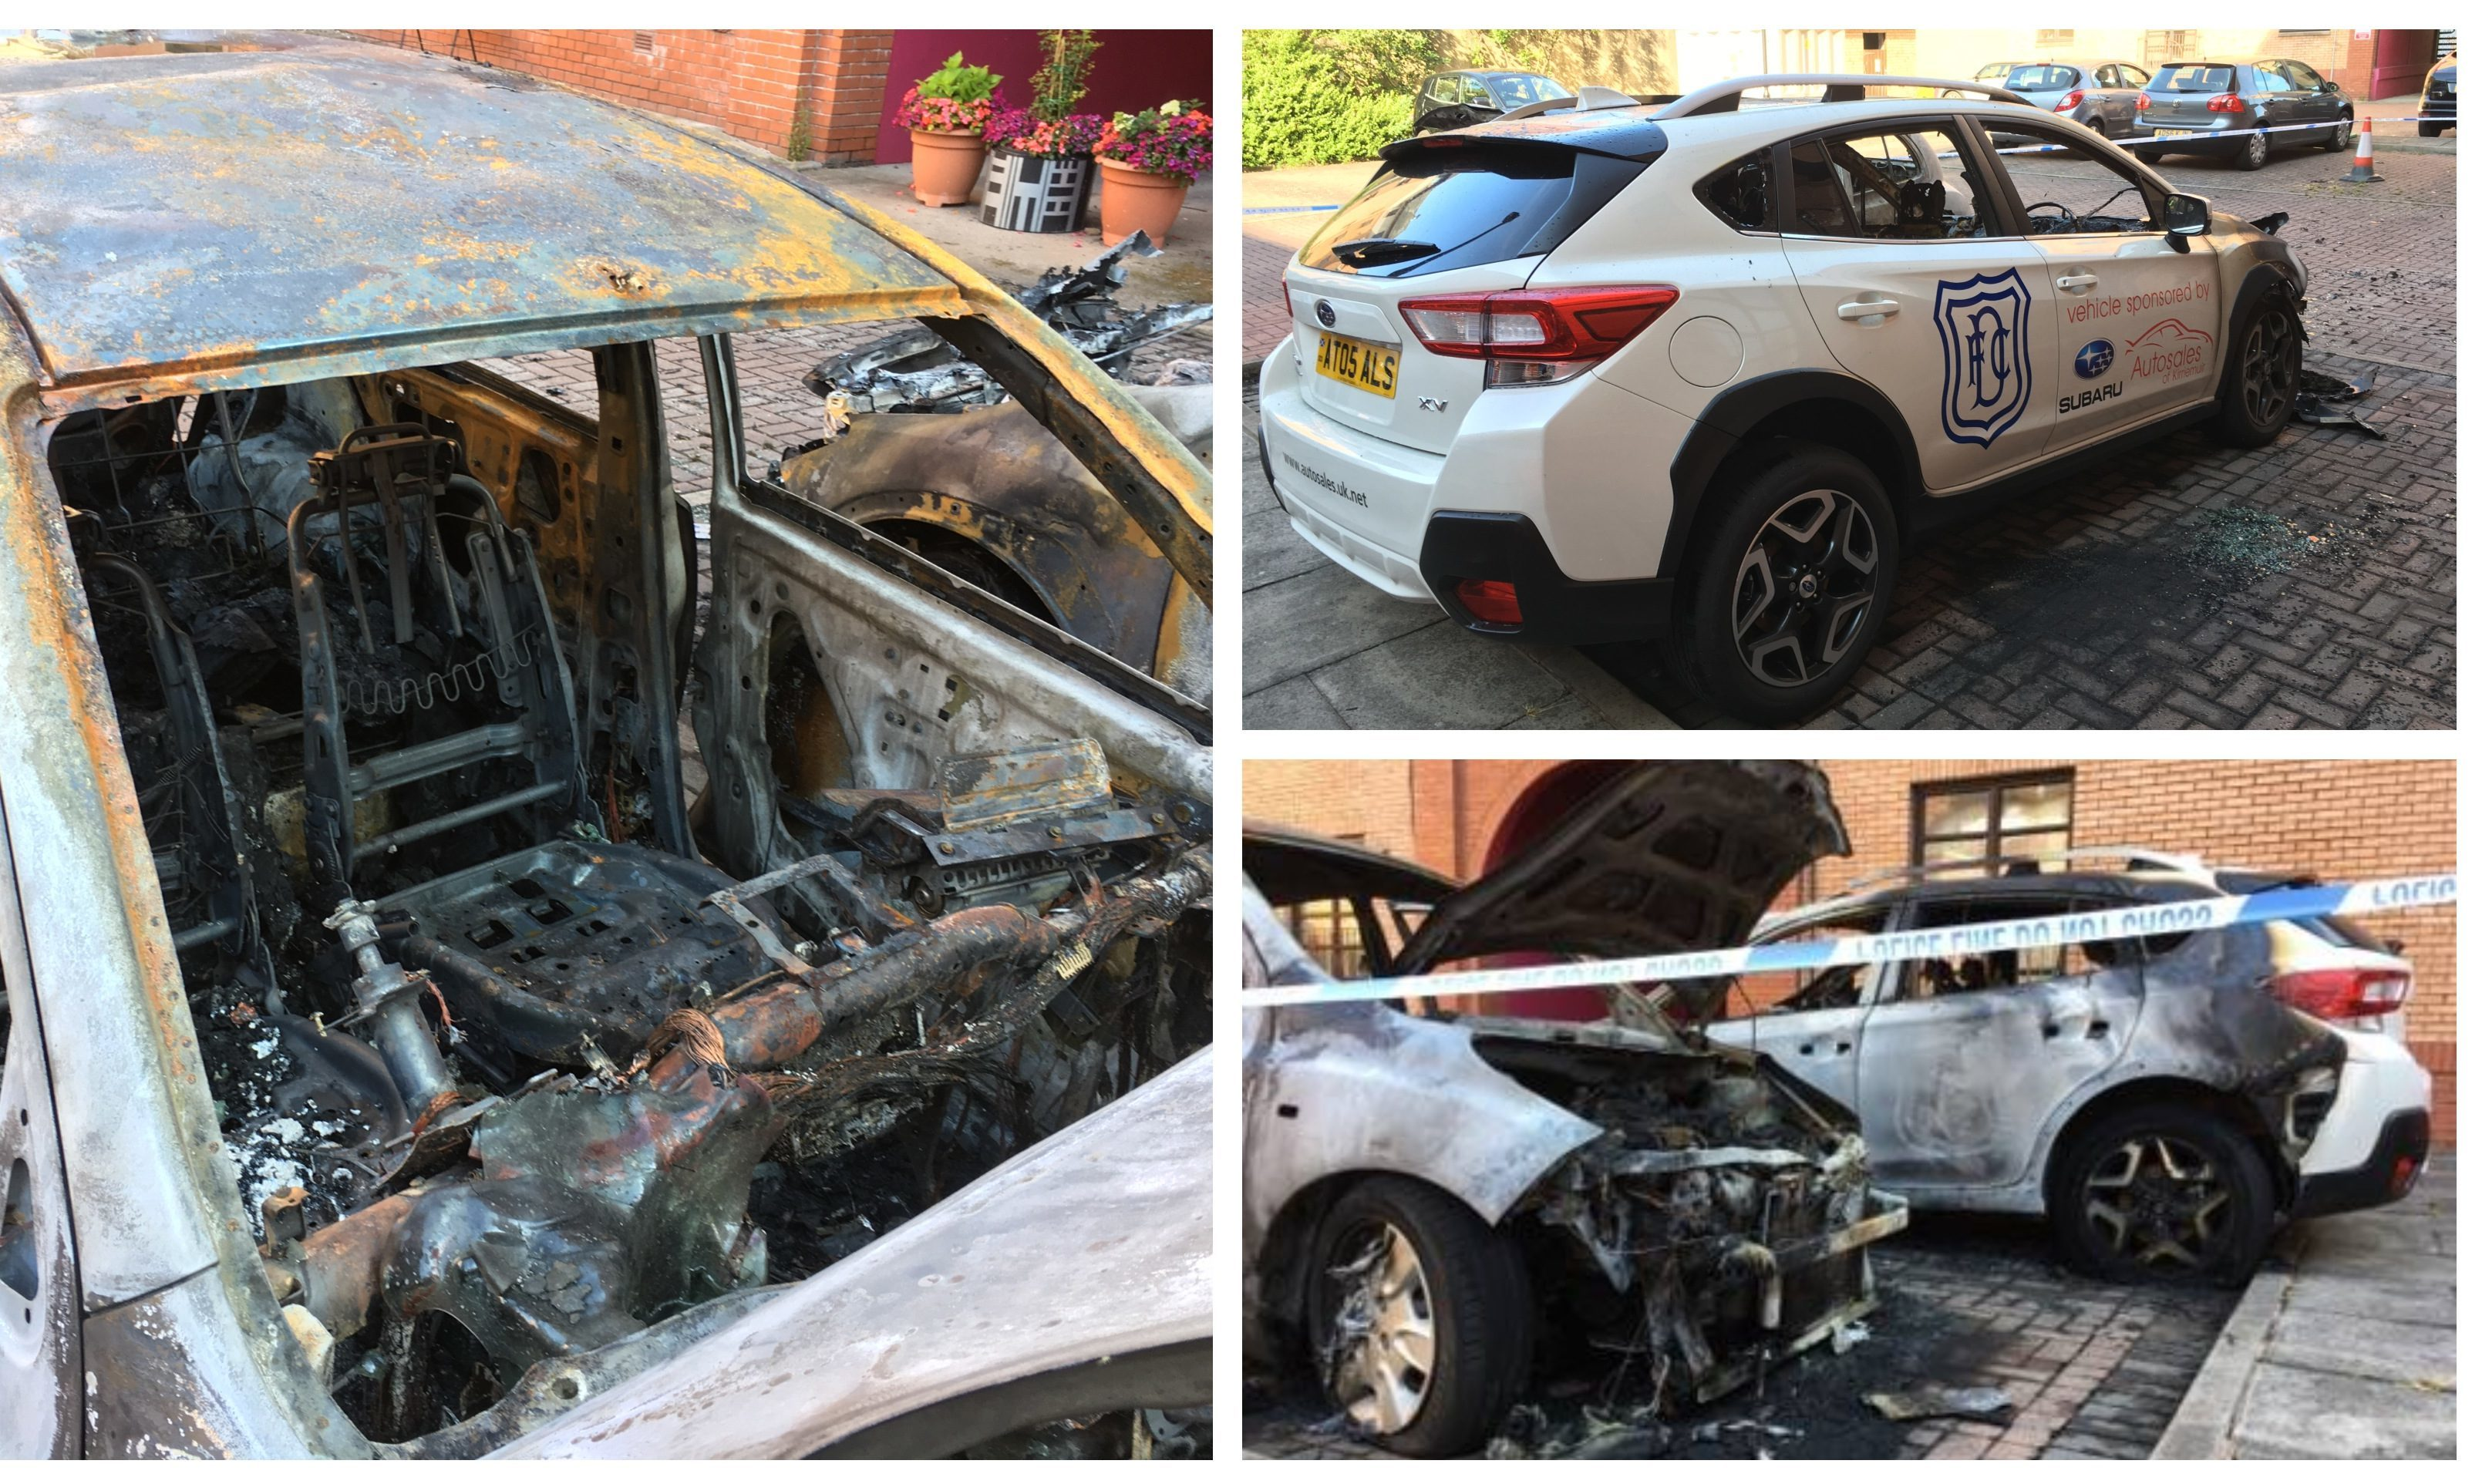 Some of the vehicles set on fire in Dundee overnight.